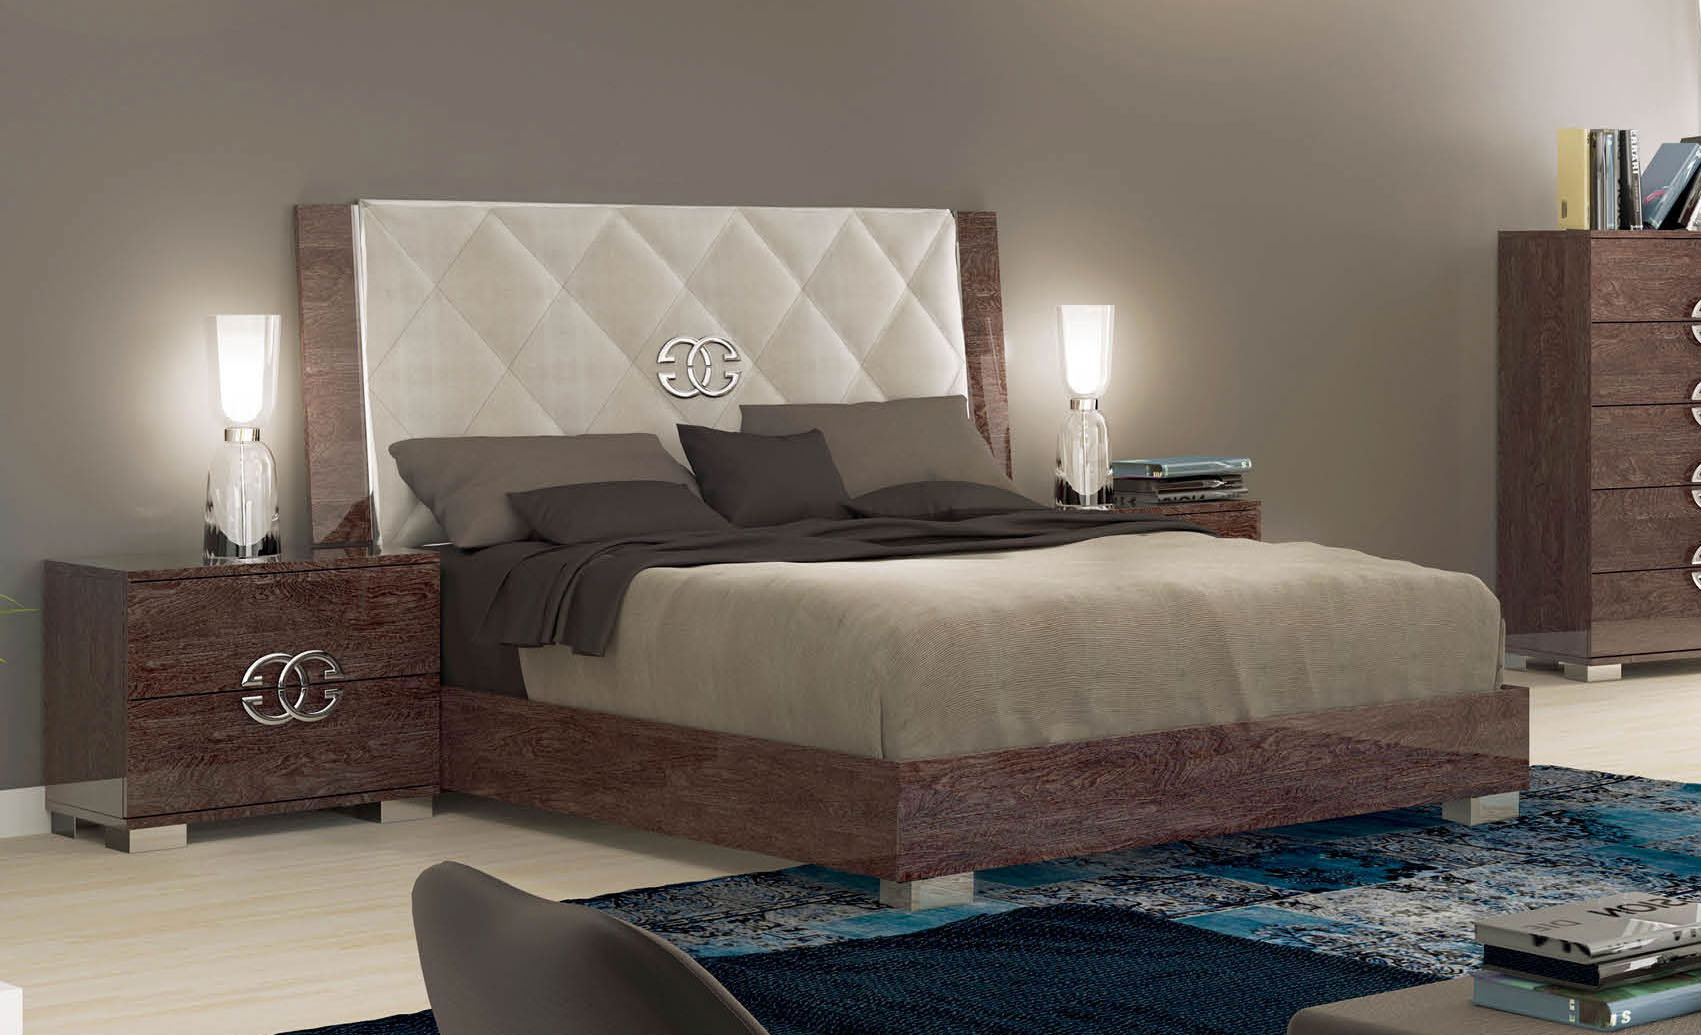 Pictures of platform beds - Sku 412716 Unique Leather High End Platform Bed